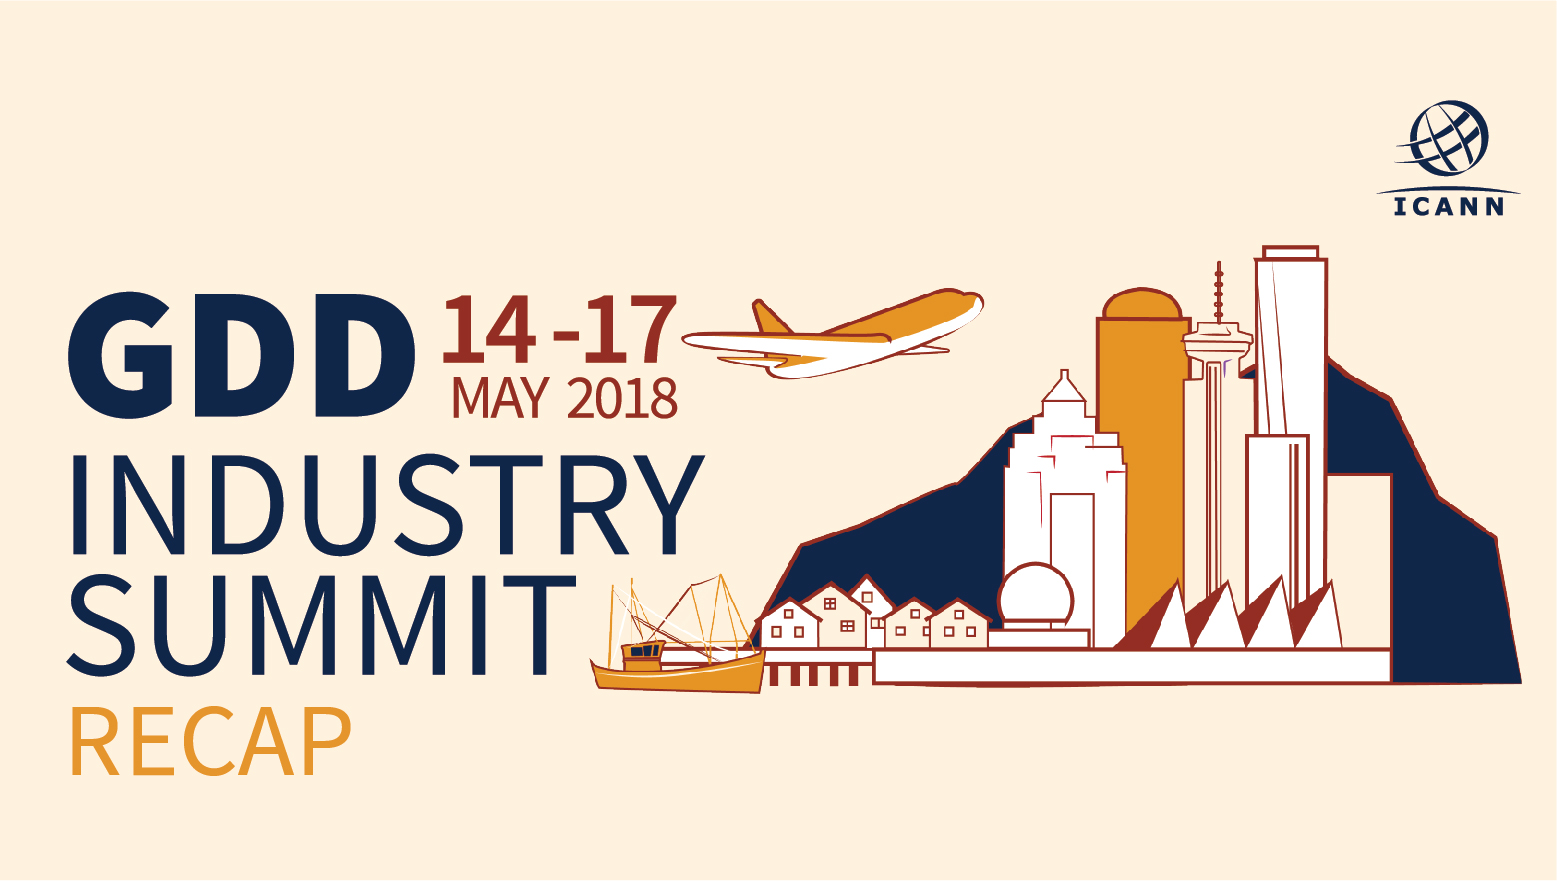 Gdd industry summit recap 1557x881 12jun18 en